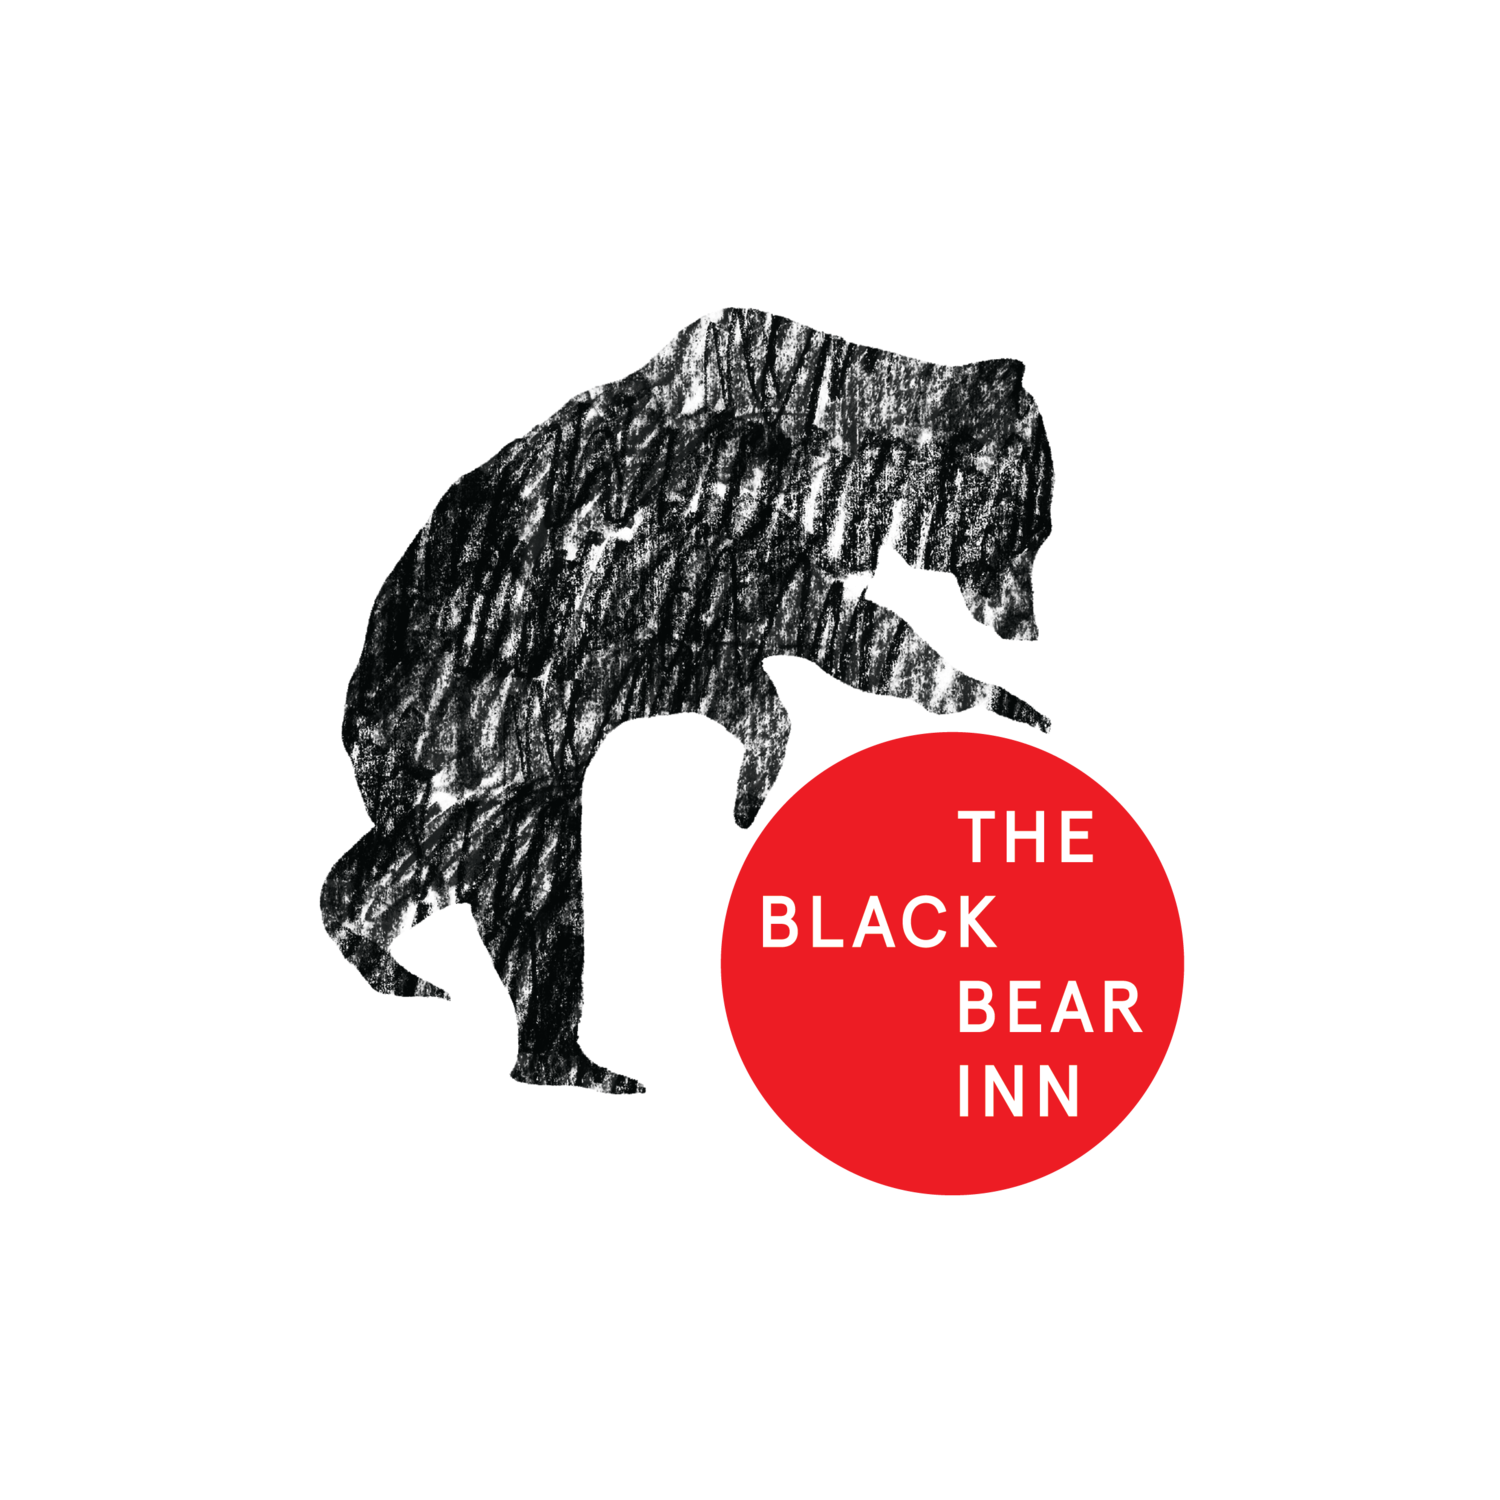 The Black Bear Inn